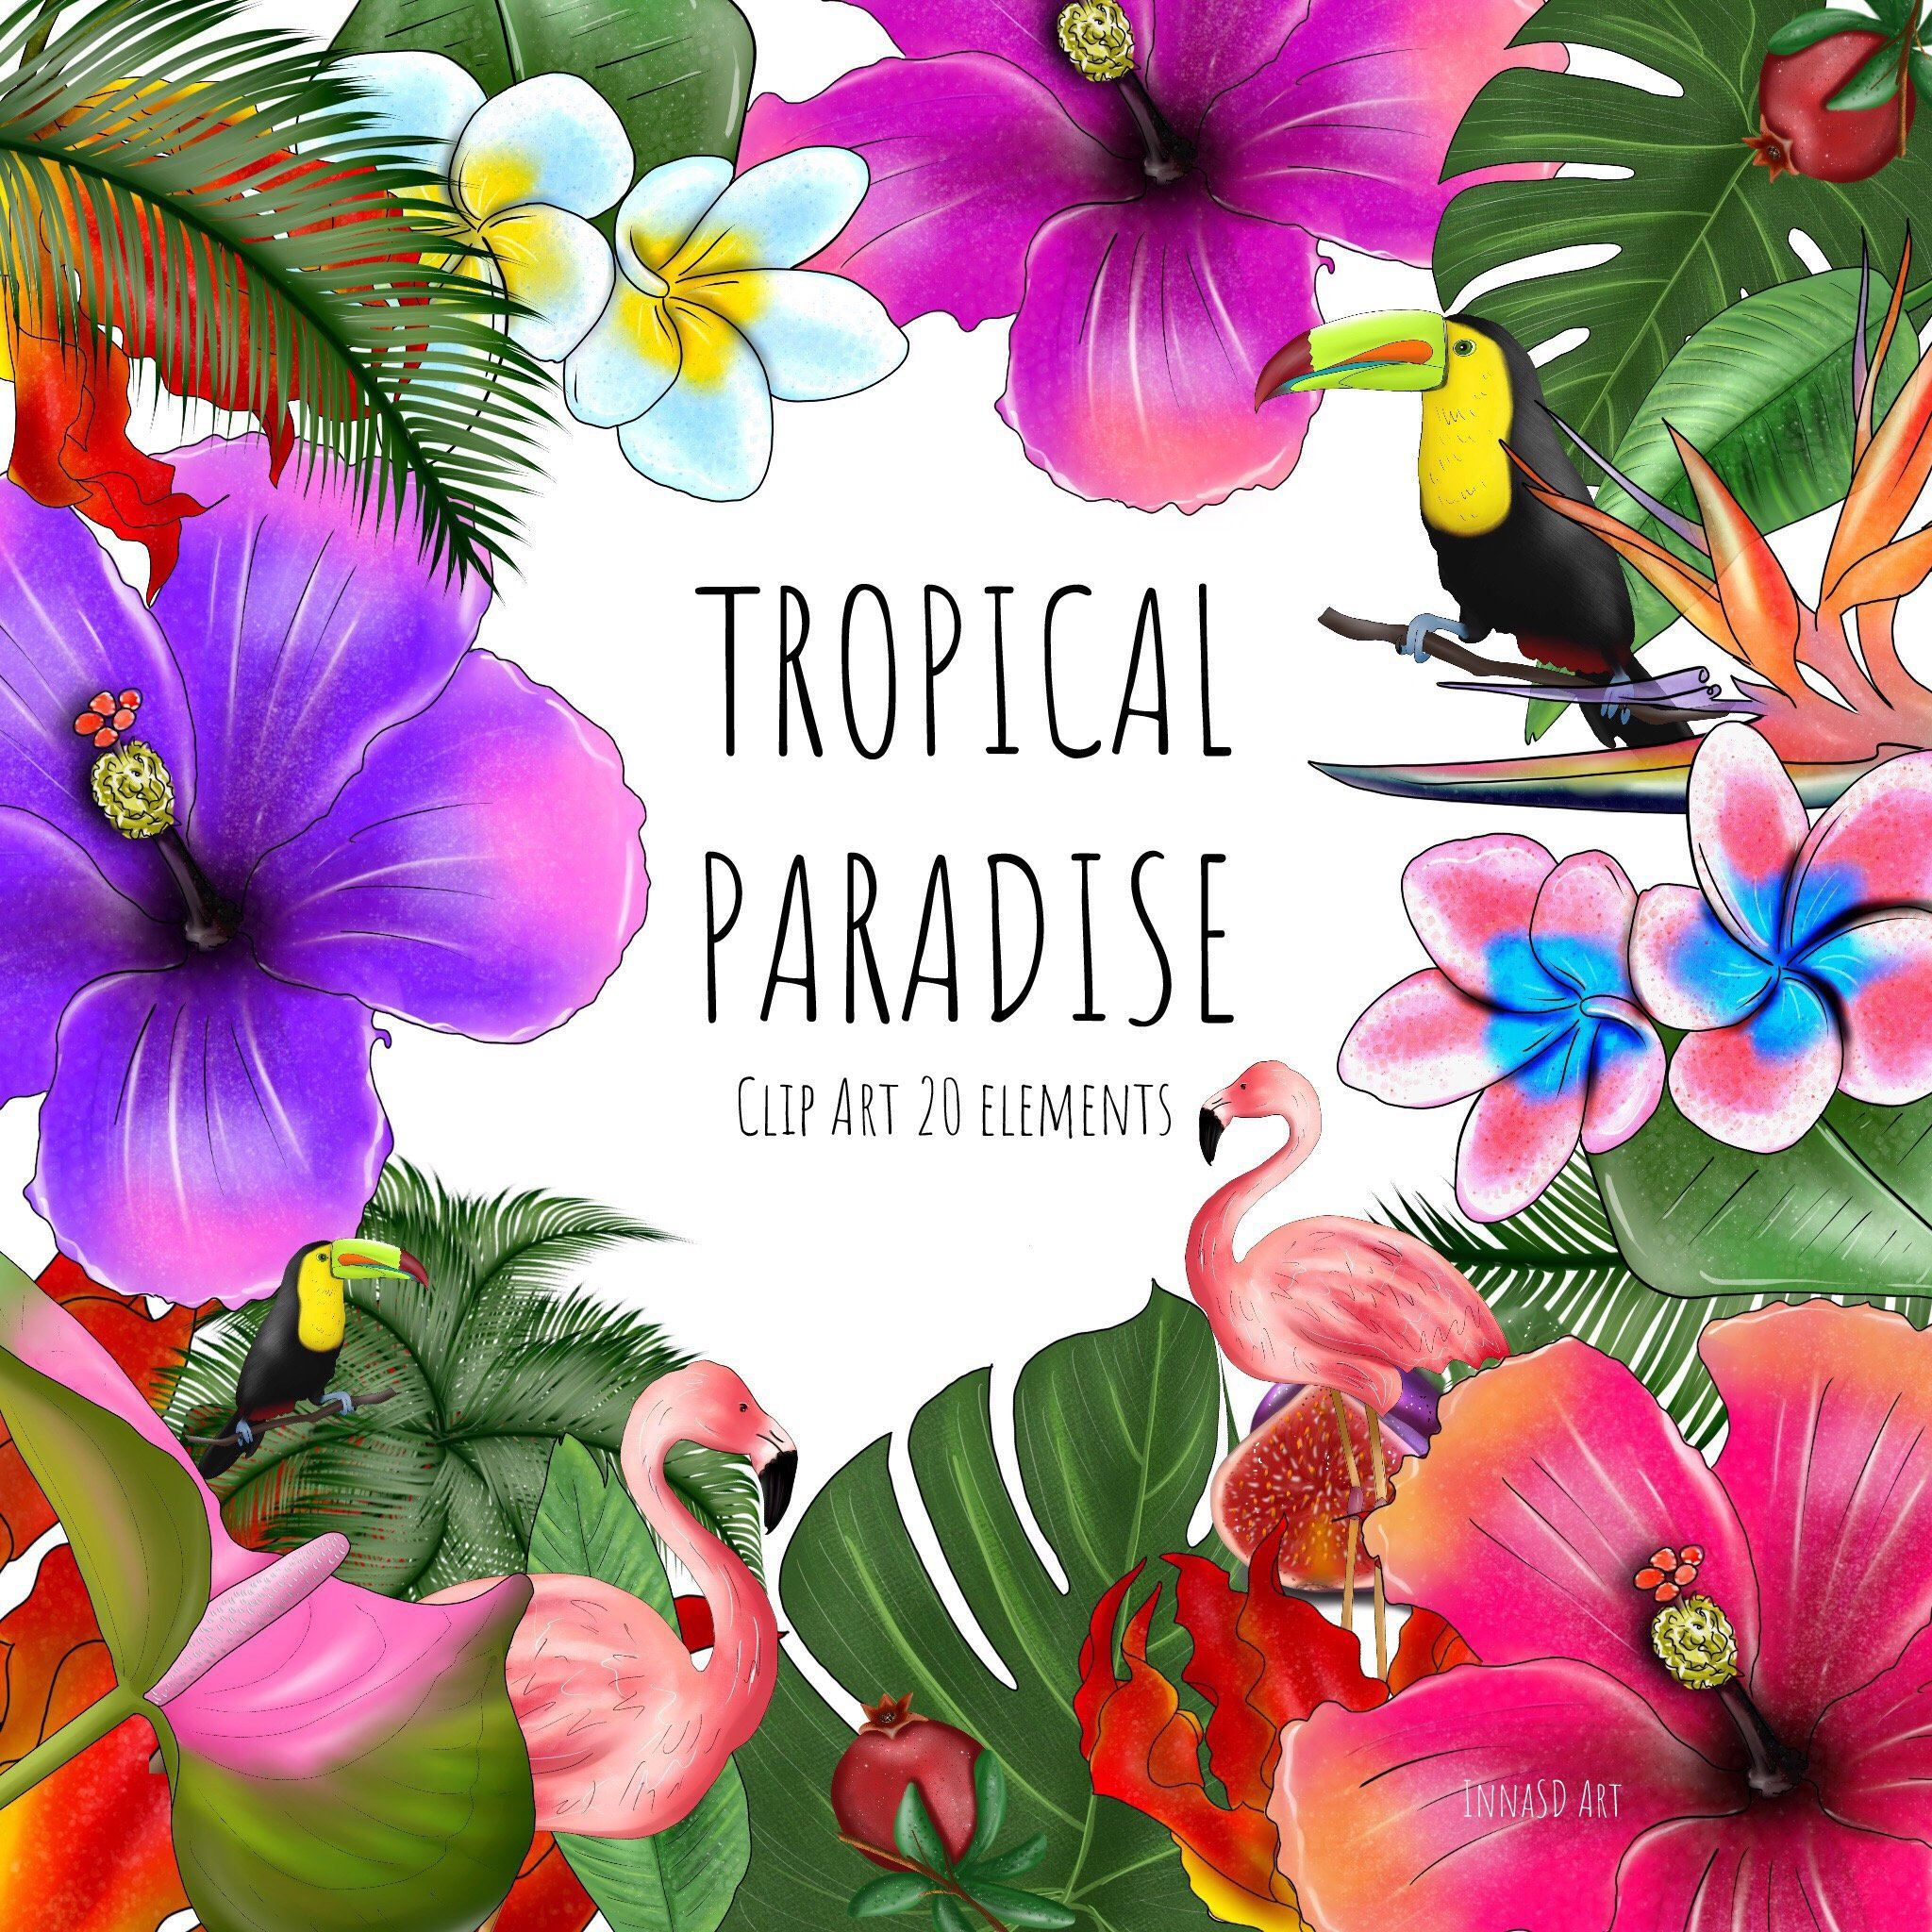 medium resolution of digital floral clipart tropical clipart paradise beach clipart hawaii clipart flamingo clipart tropical flowers clipart jungle clipart by innasdart on